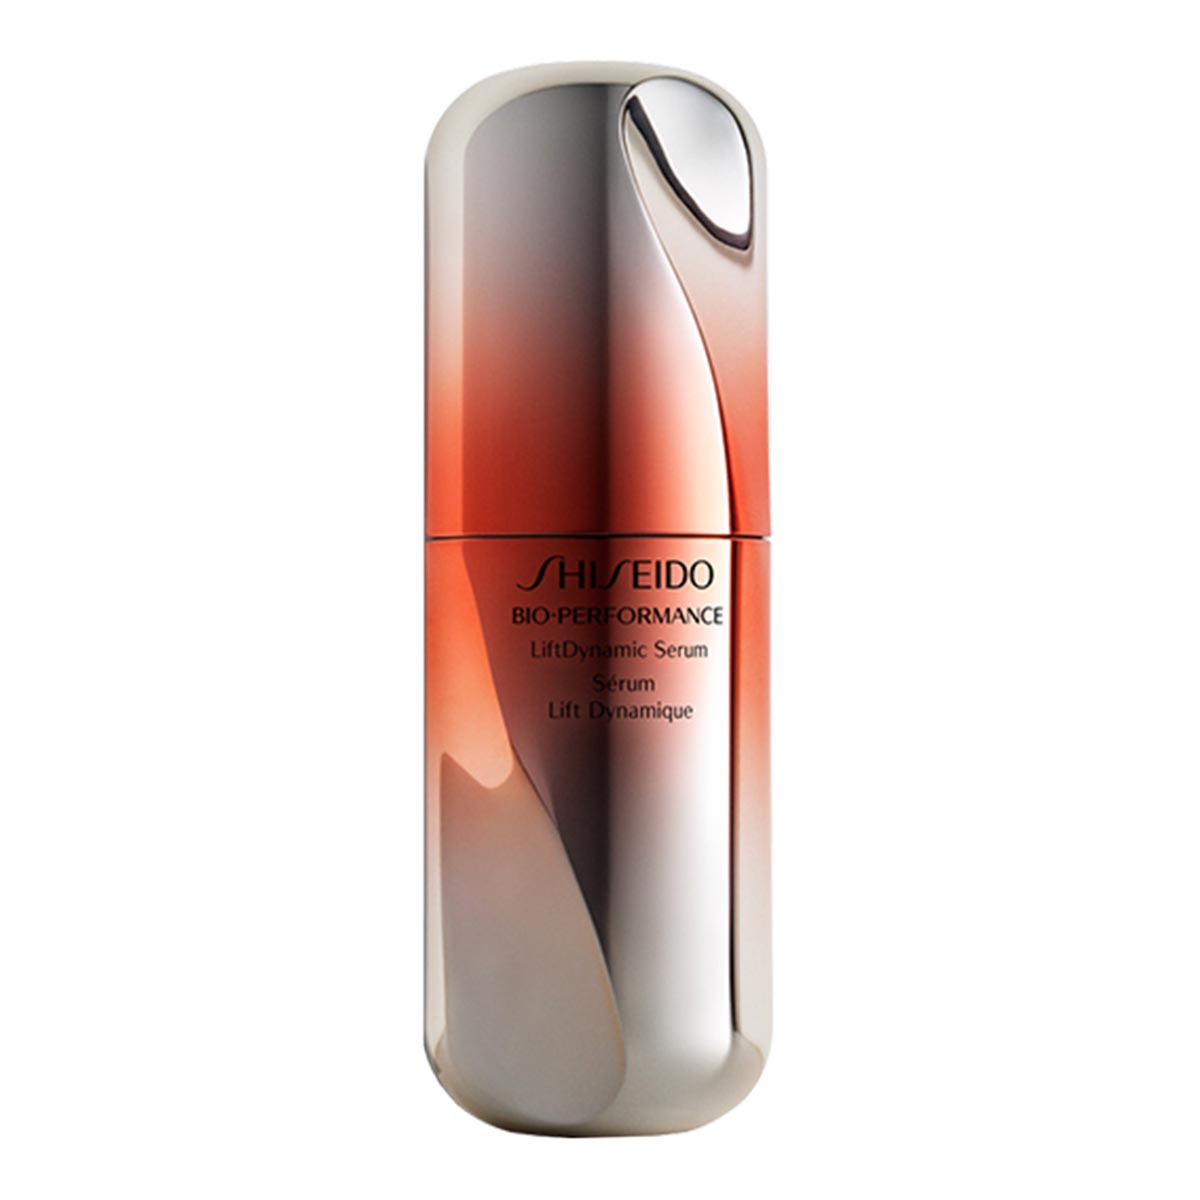 Shiseido bio performance lift dynamic serum 30ml